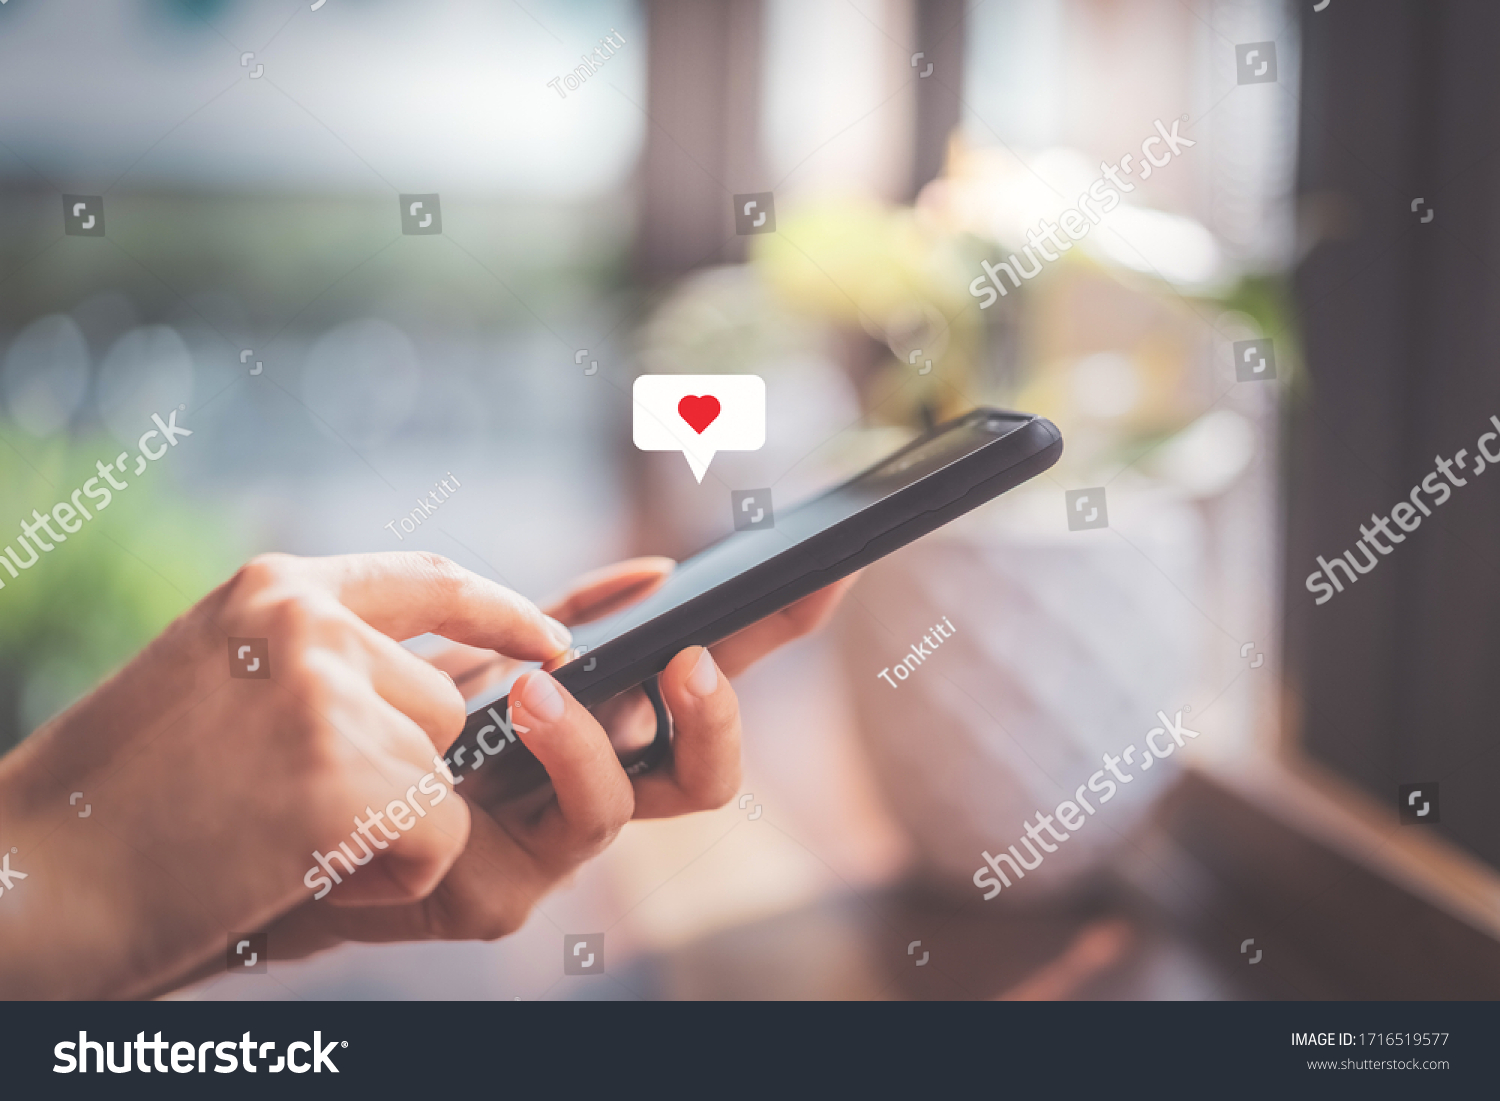 Woman hand using smartphone with heart icon at coffee shop background. Technology business and social lifestyle concept. Vintage tone filter effect color style. #1716519577